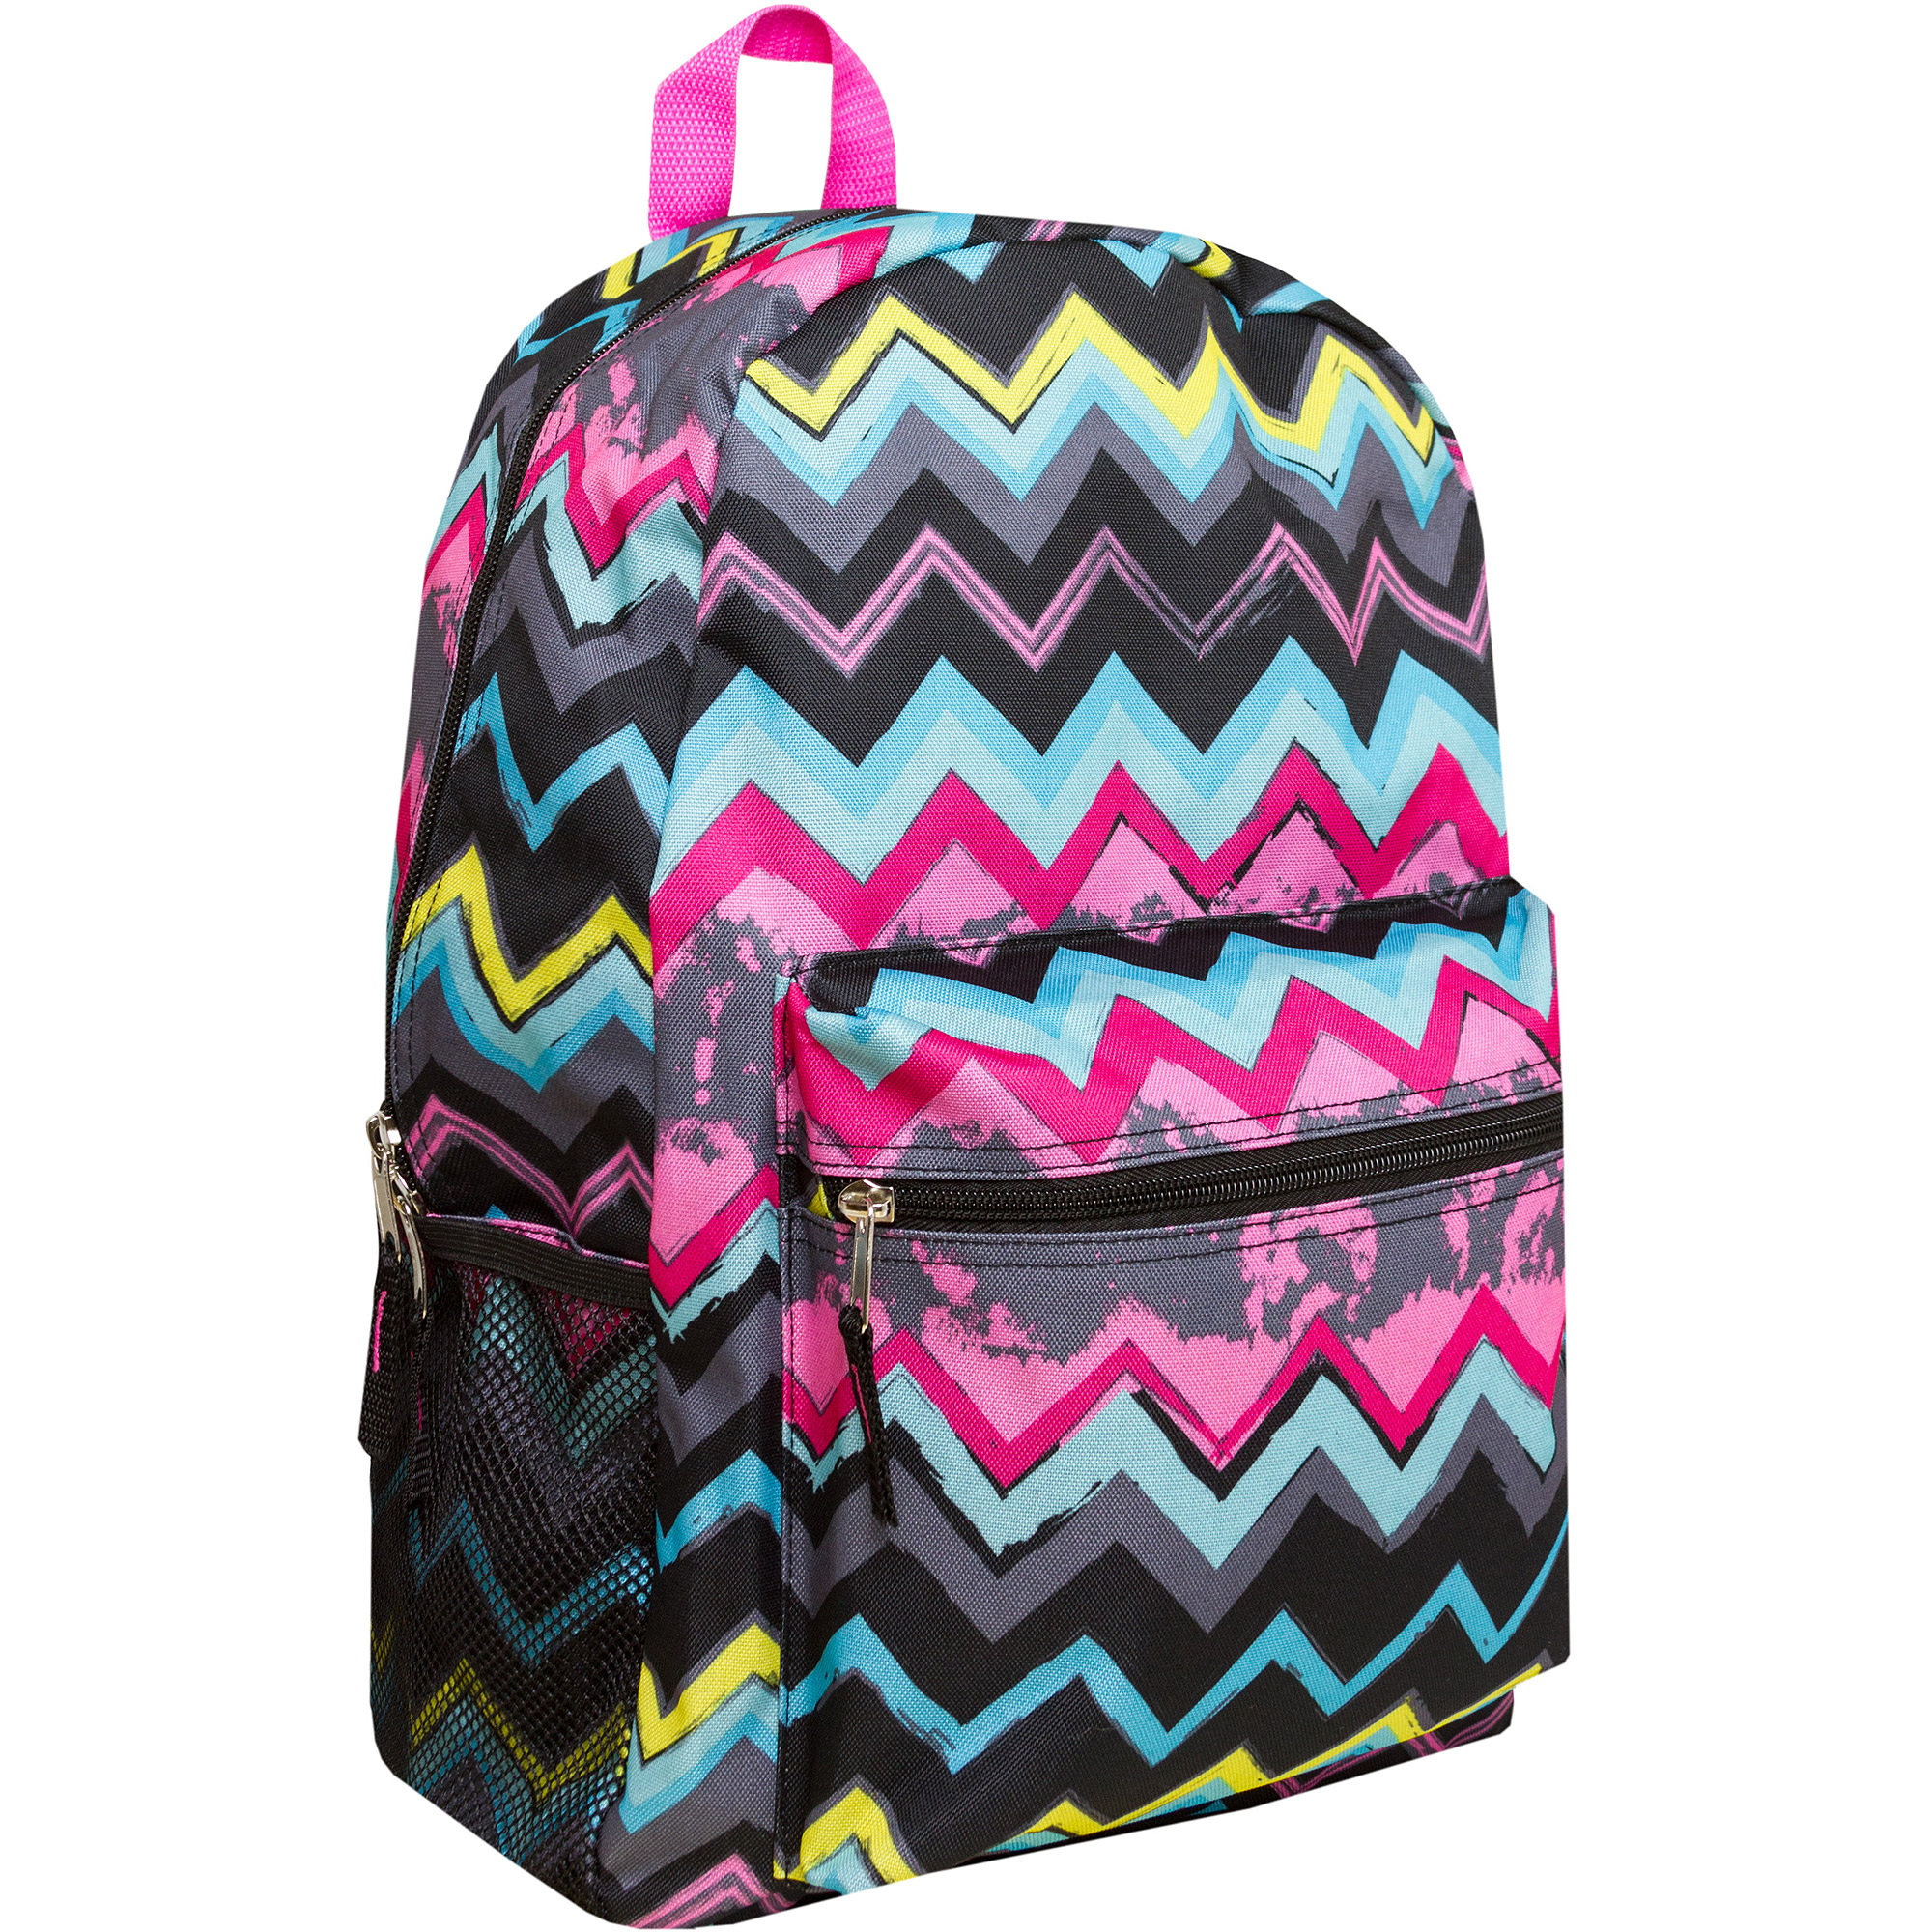 "Chevron Print 17"" Backpack"